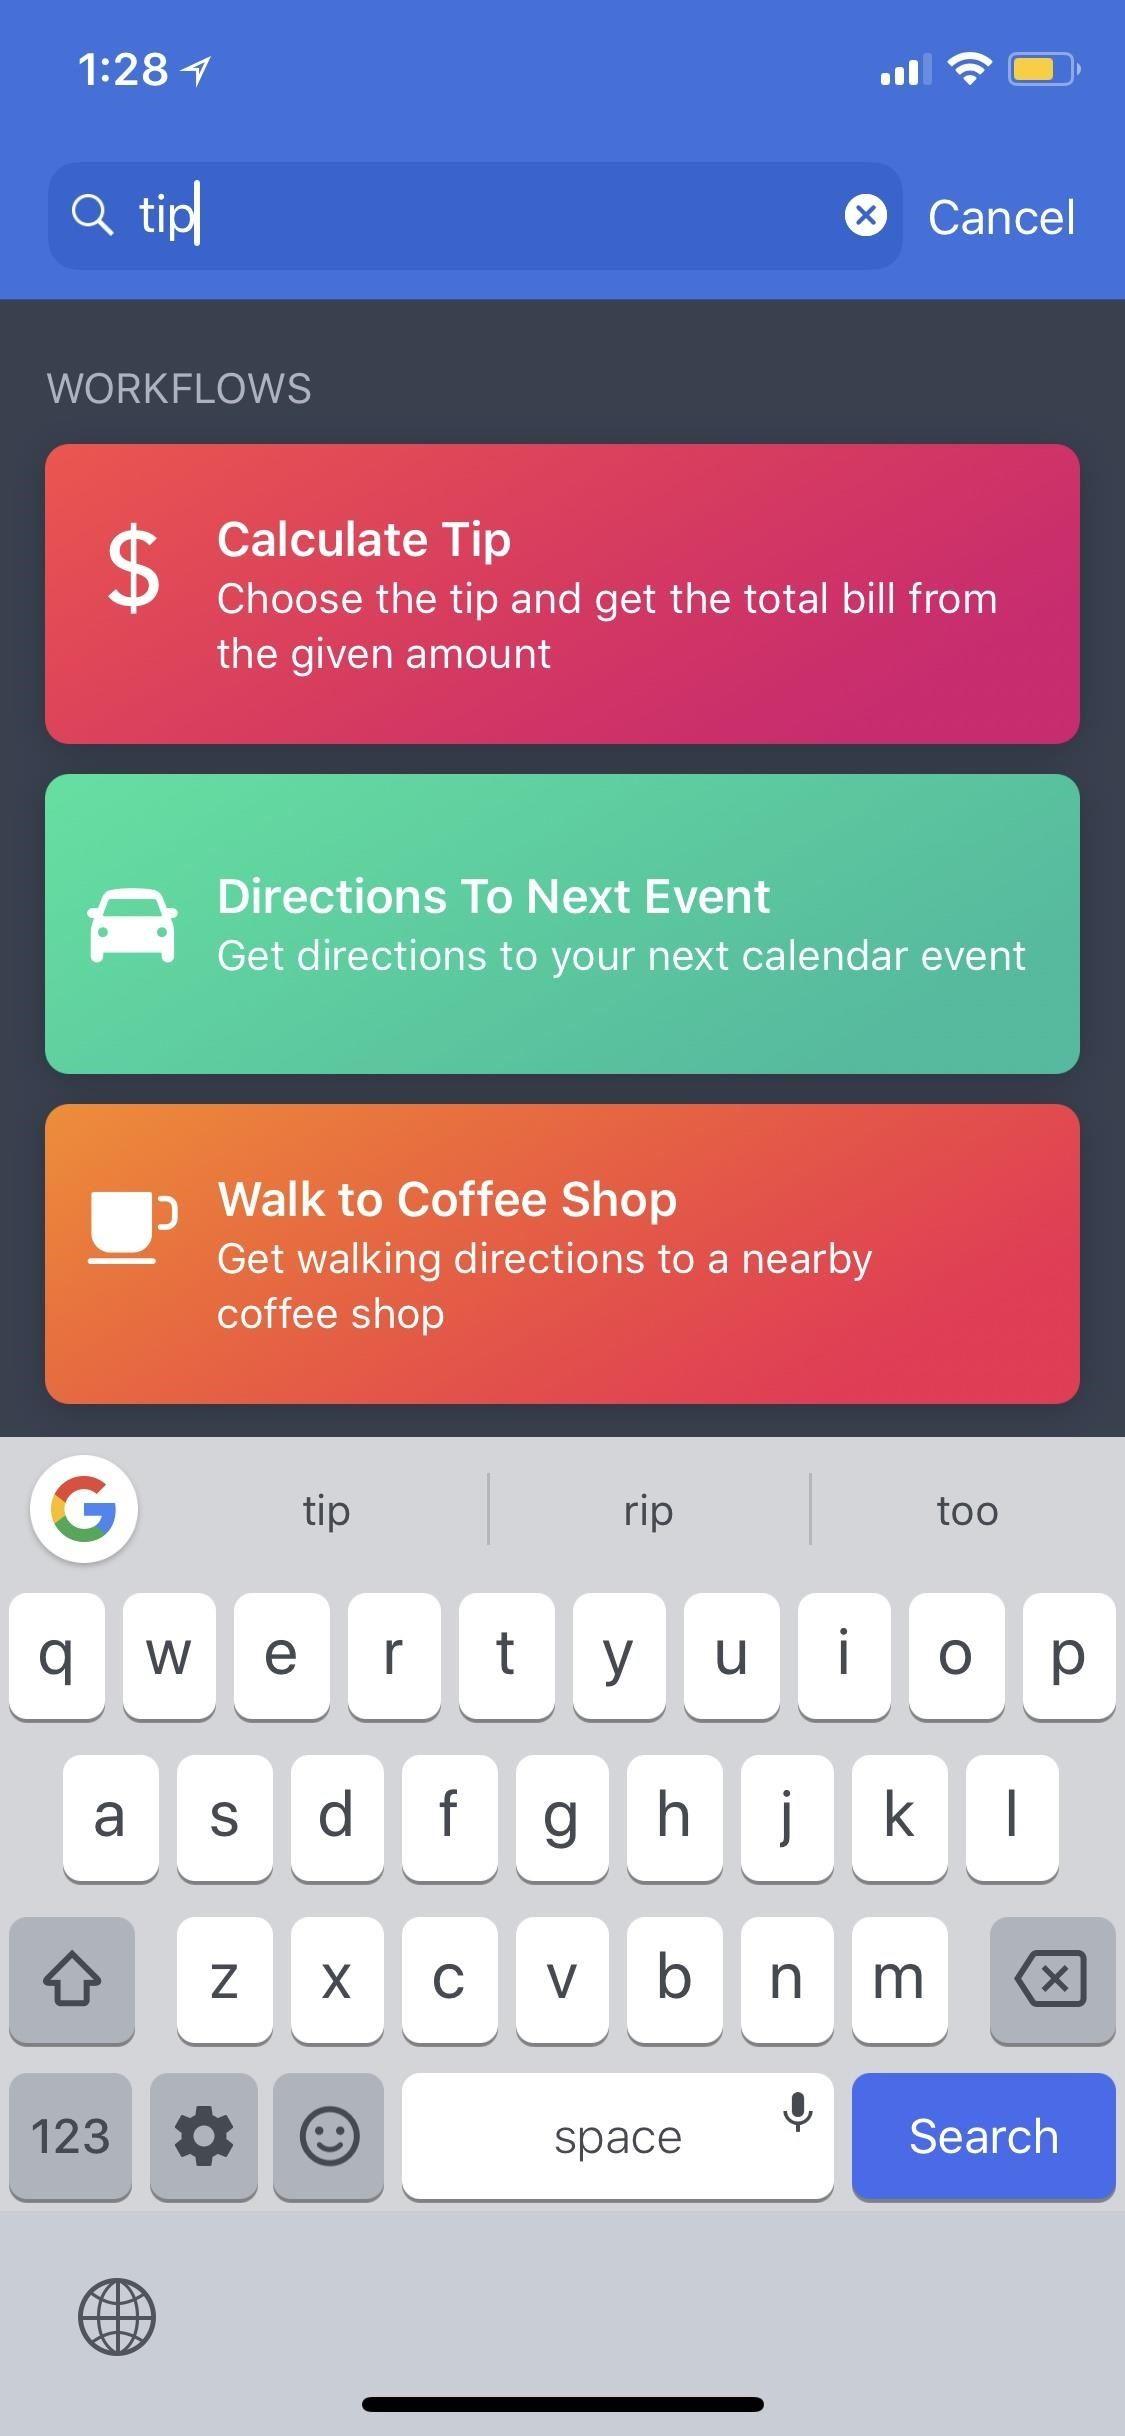 Workflow 101: How to Calculate Tips Faster on Your iPhone